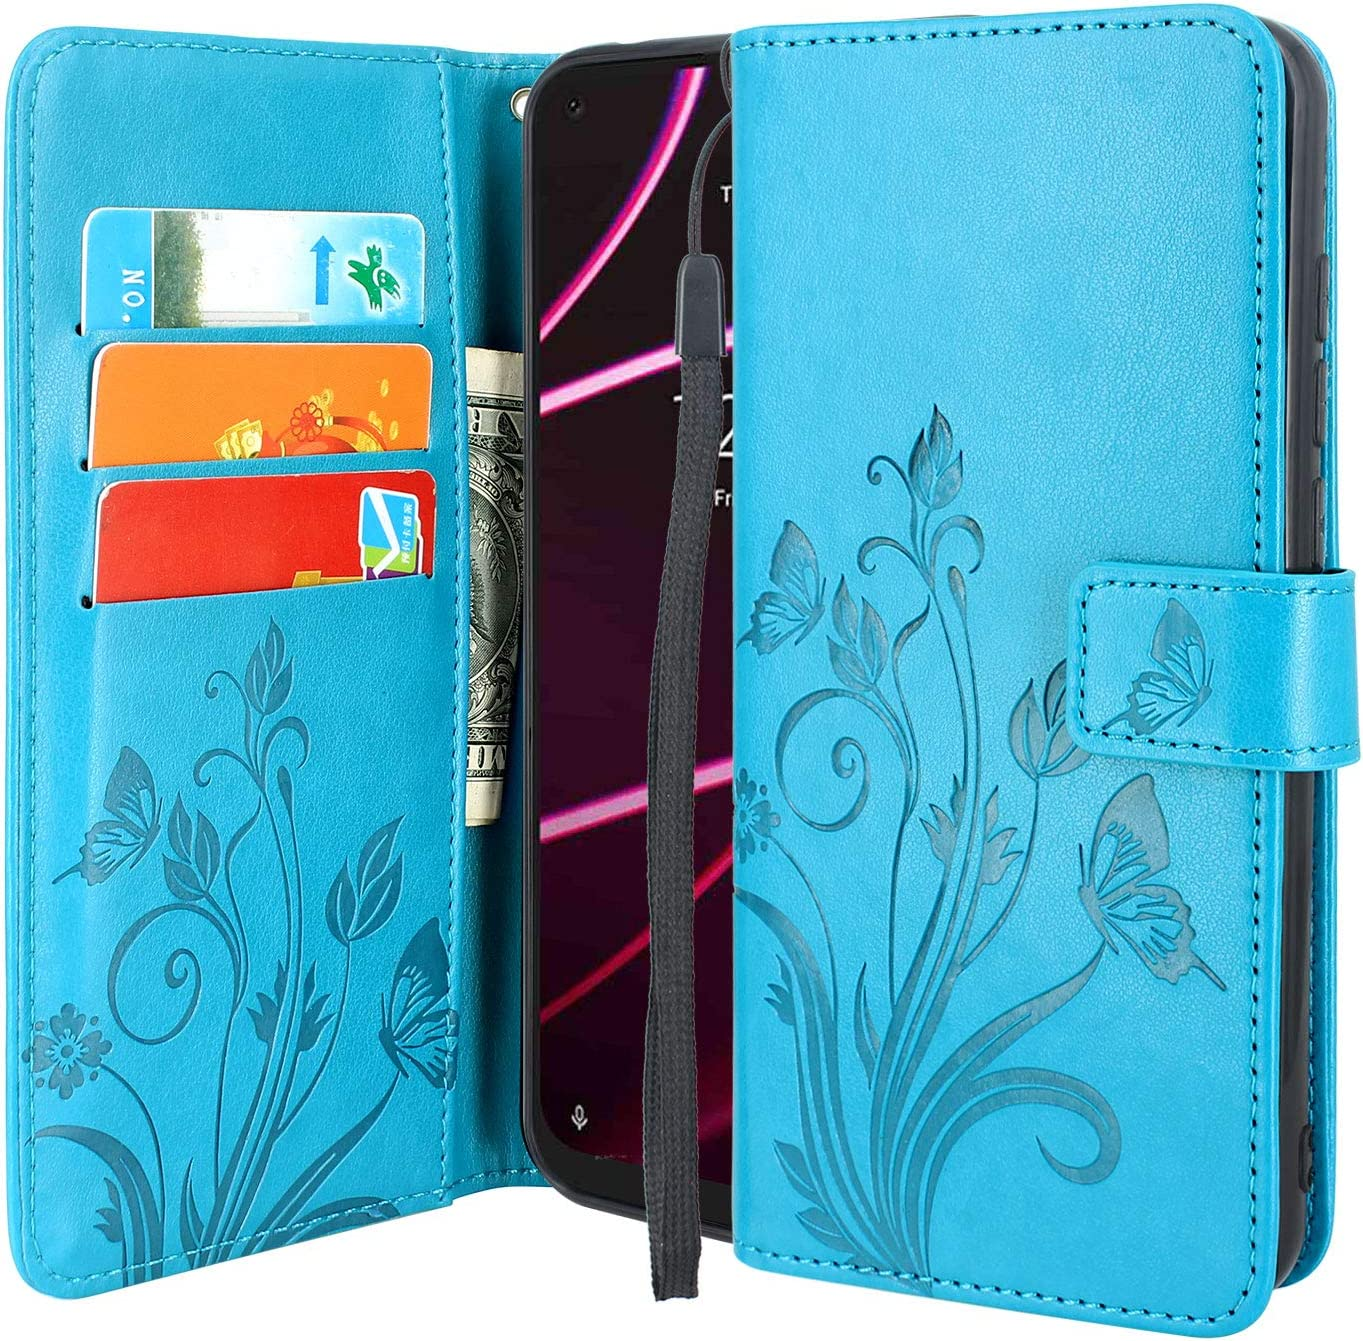 Lacass Floral Butterfly PU Leather Flip Wallet Case Cover Kickstand with Card Slots and Wrist Strap for T-Mobile Revvl 5G (Blue)